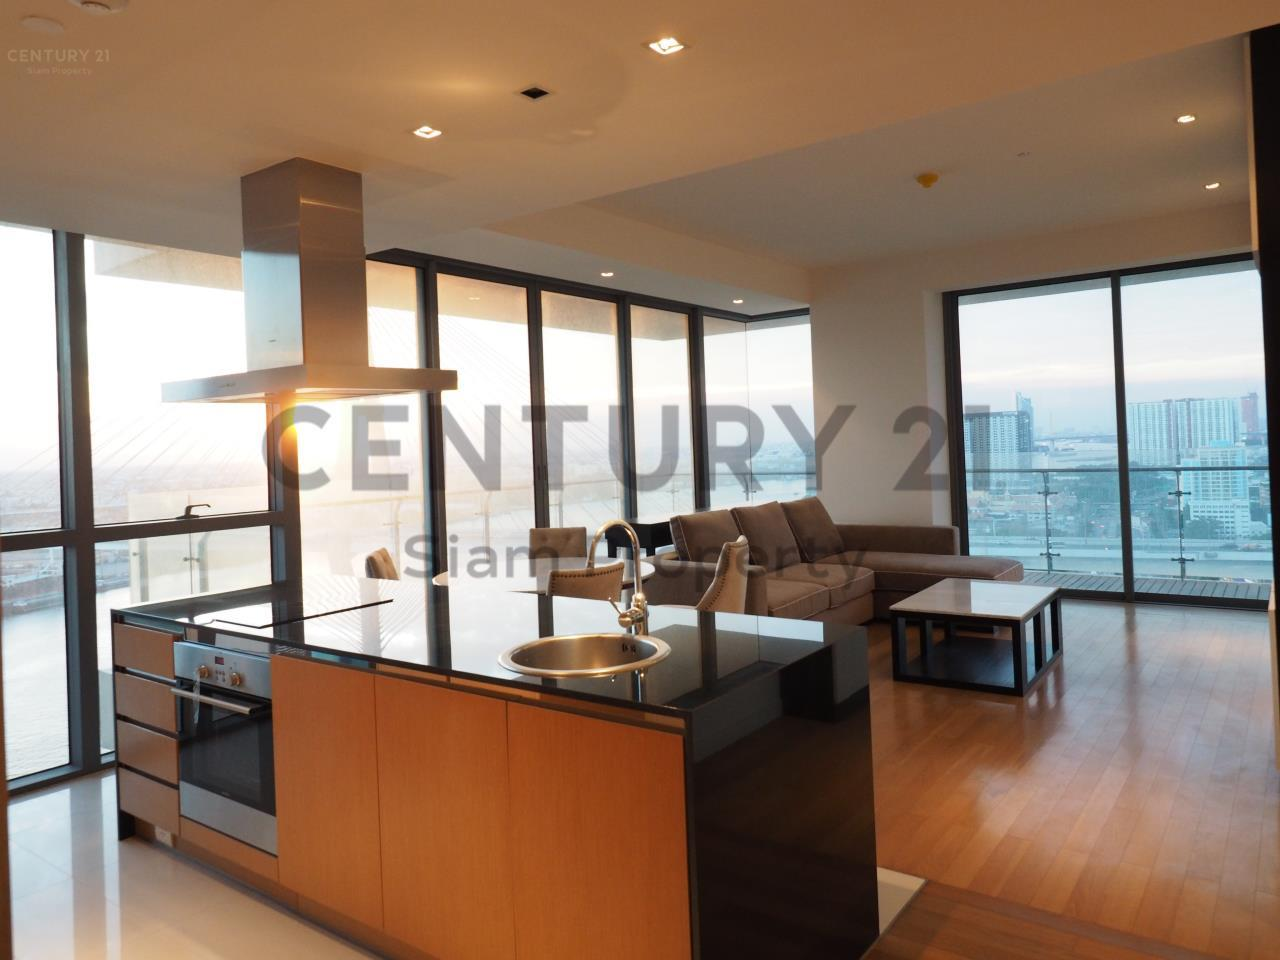 Century21 Siam Property Agency's The Pano 9